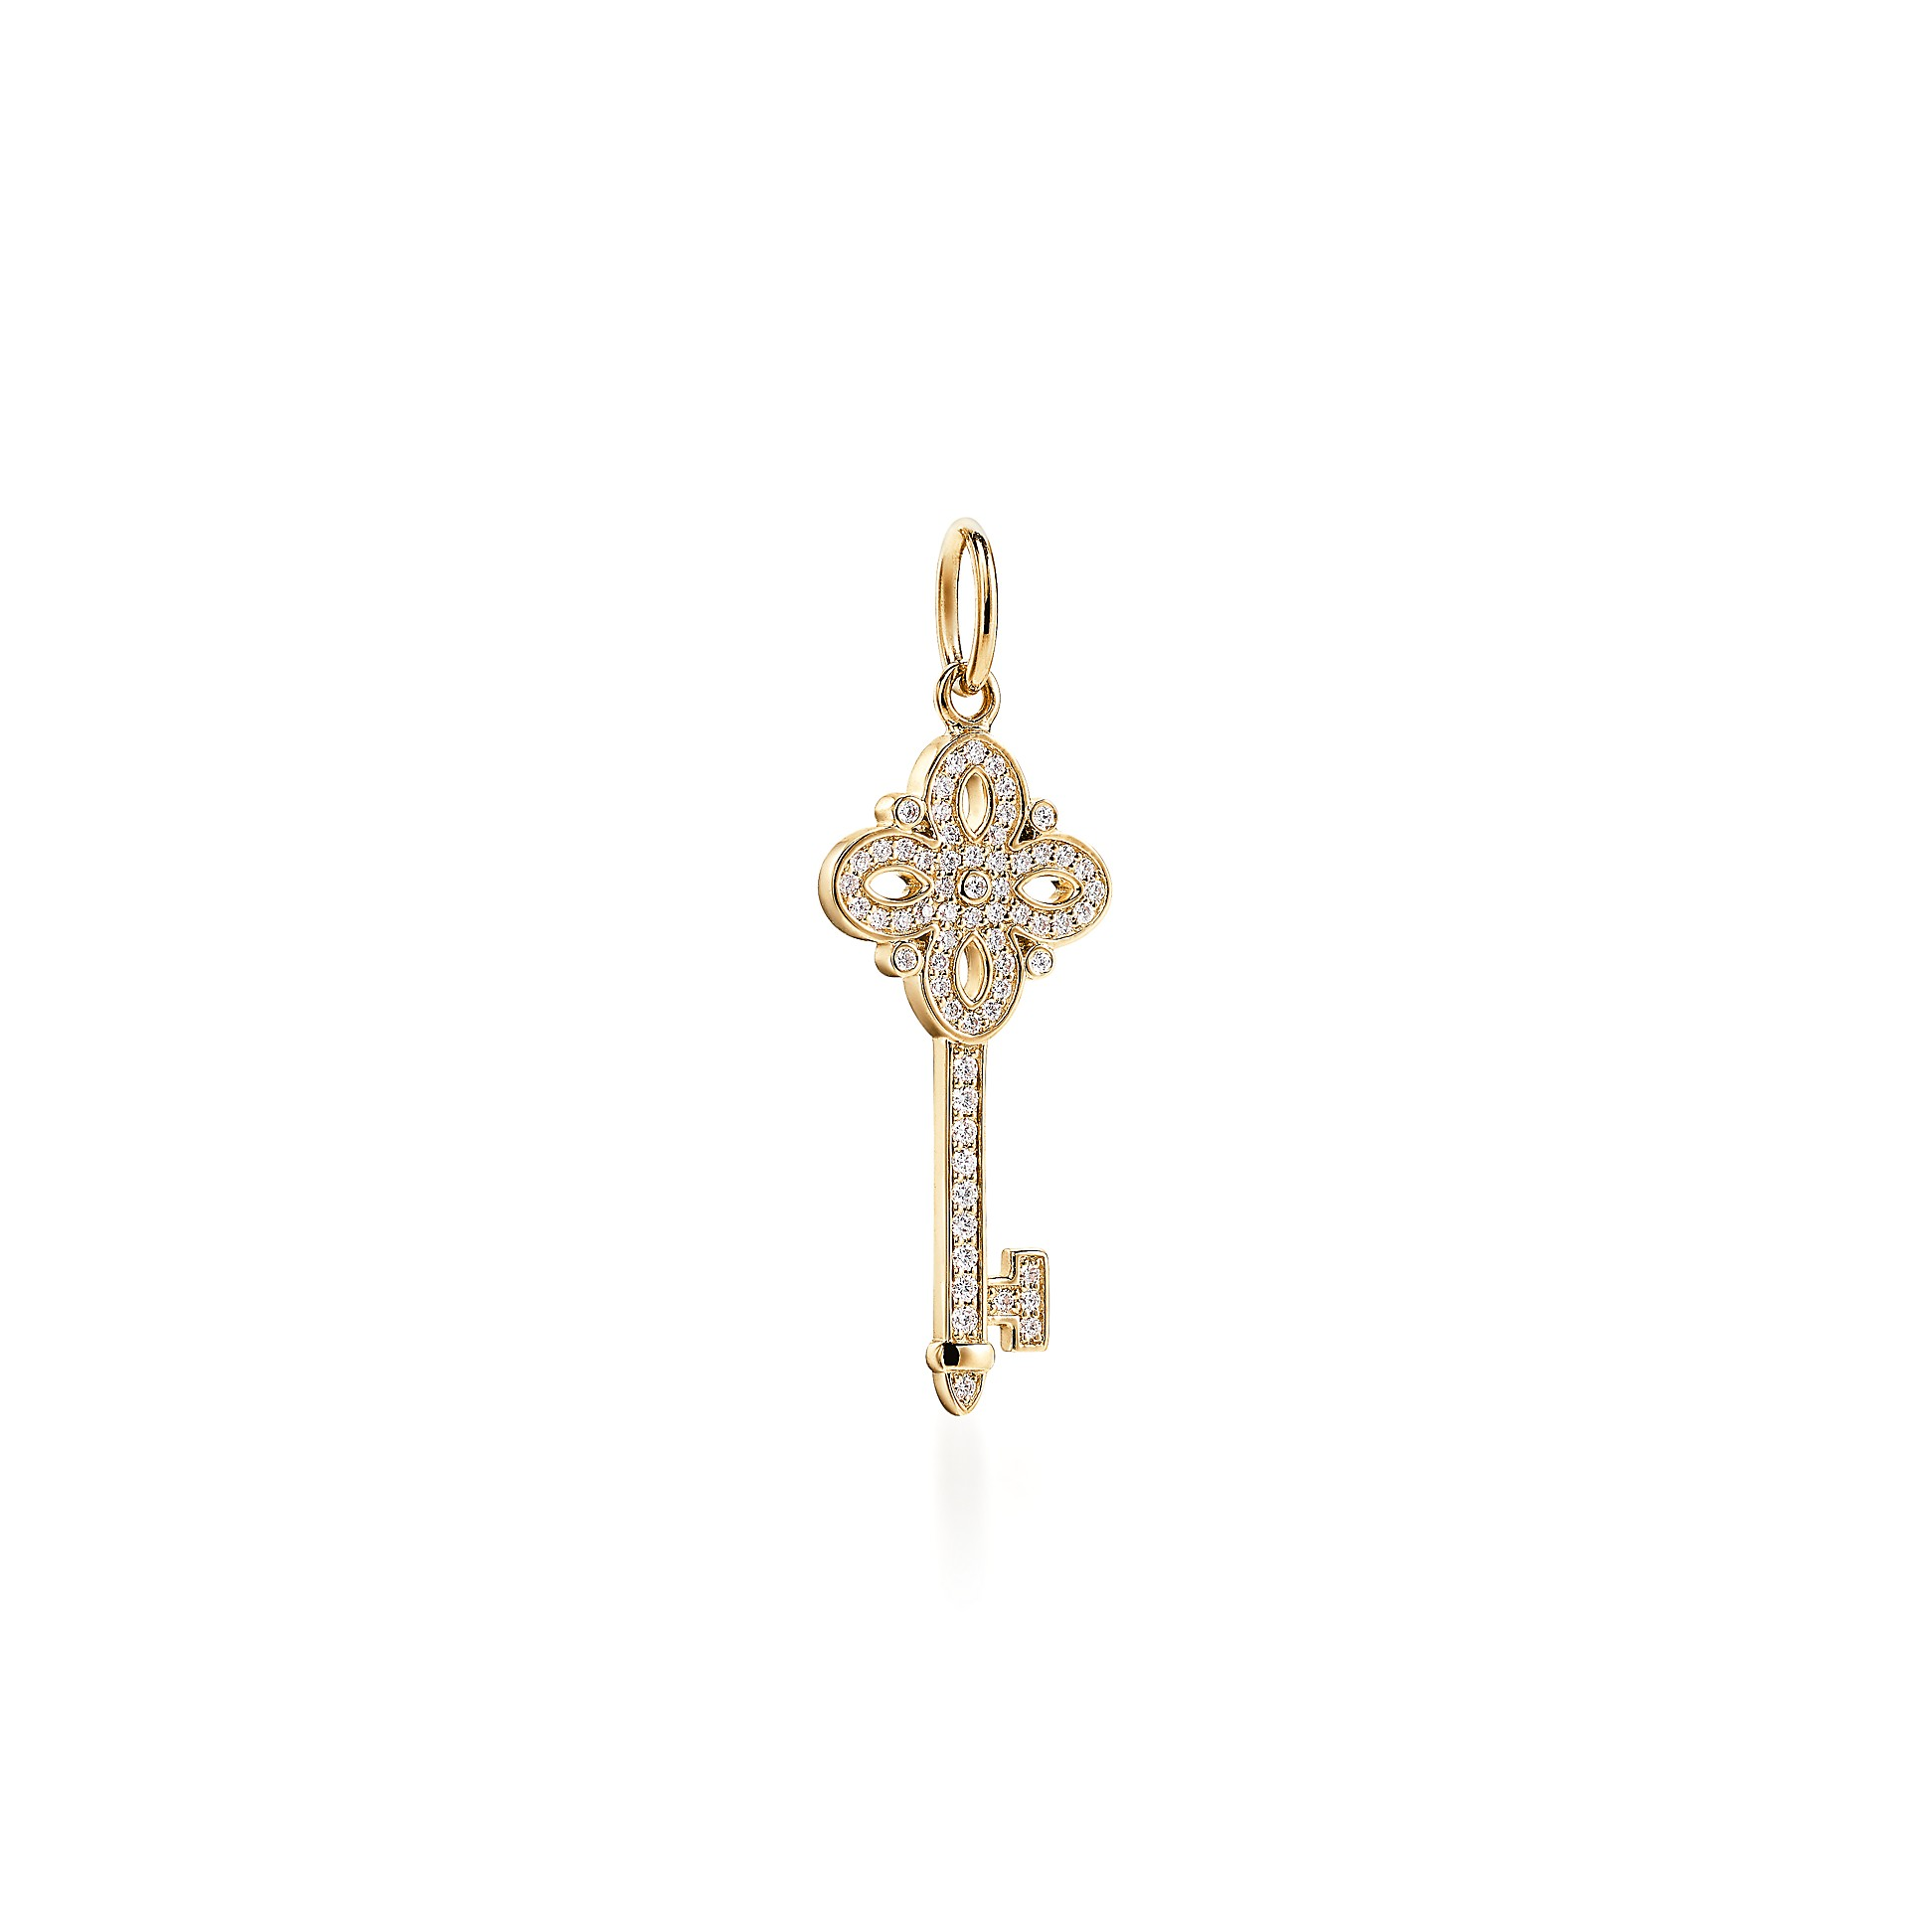 Tiffany Keys 												  												  											 										 									 									Tiffany Victoria® Key by Tiffany Keys